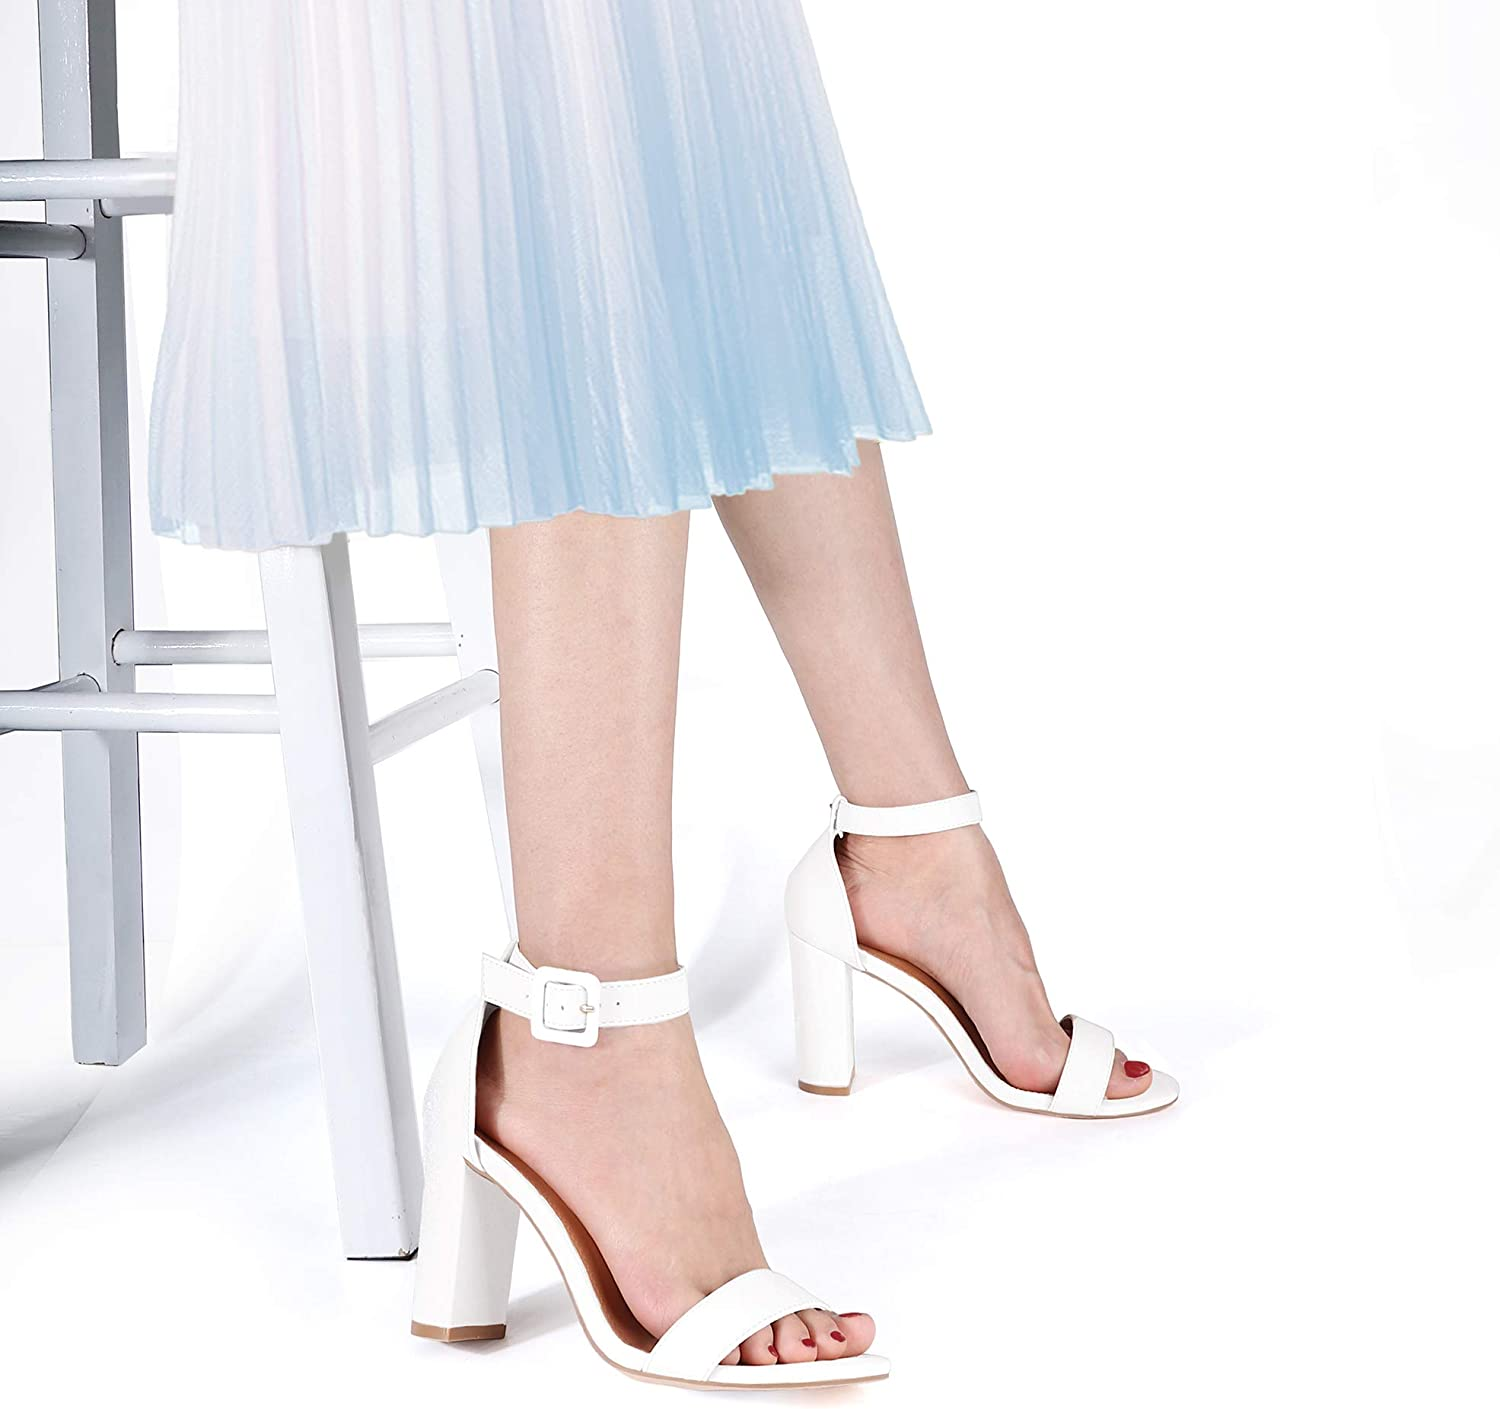 SHOWHOW Women/'s Ankle Strap Chunky High Heel Sandals Block Open Toe Wedding Party Dress Shoes